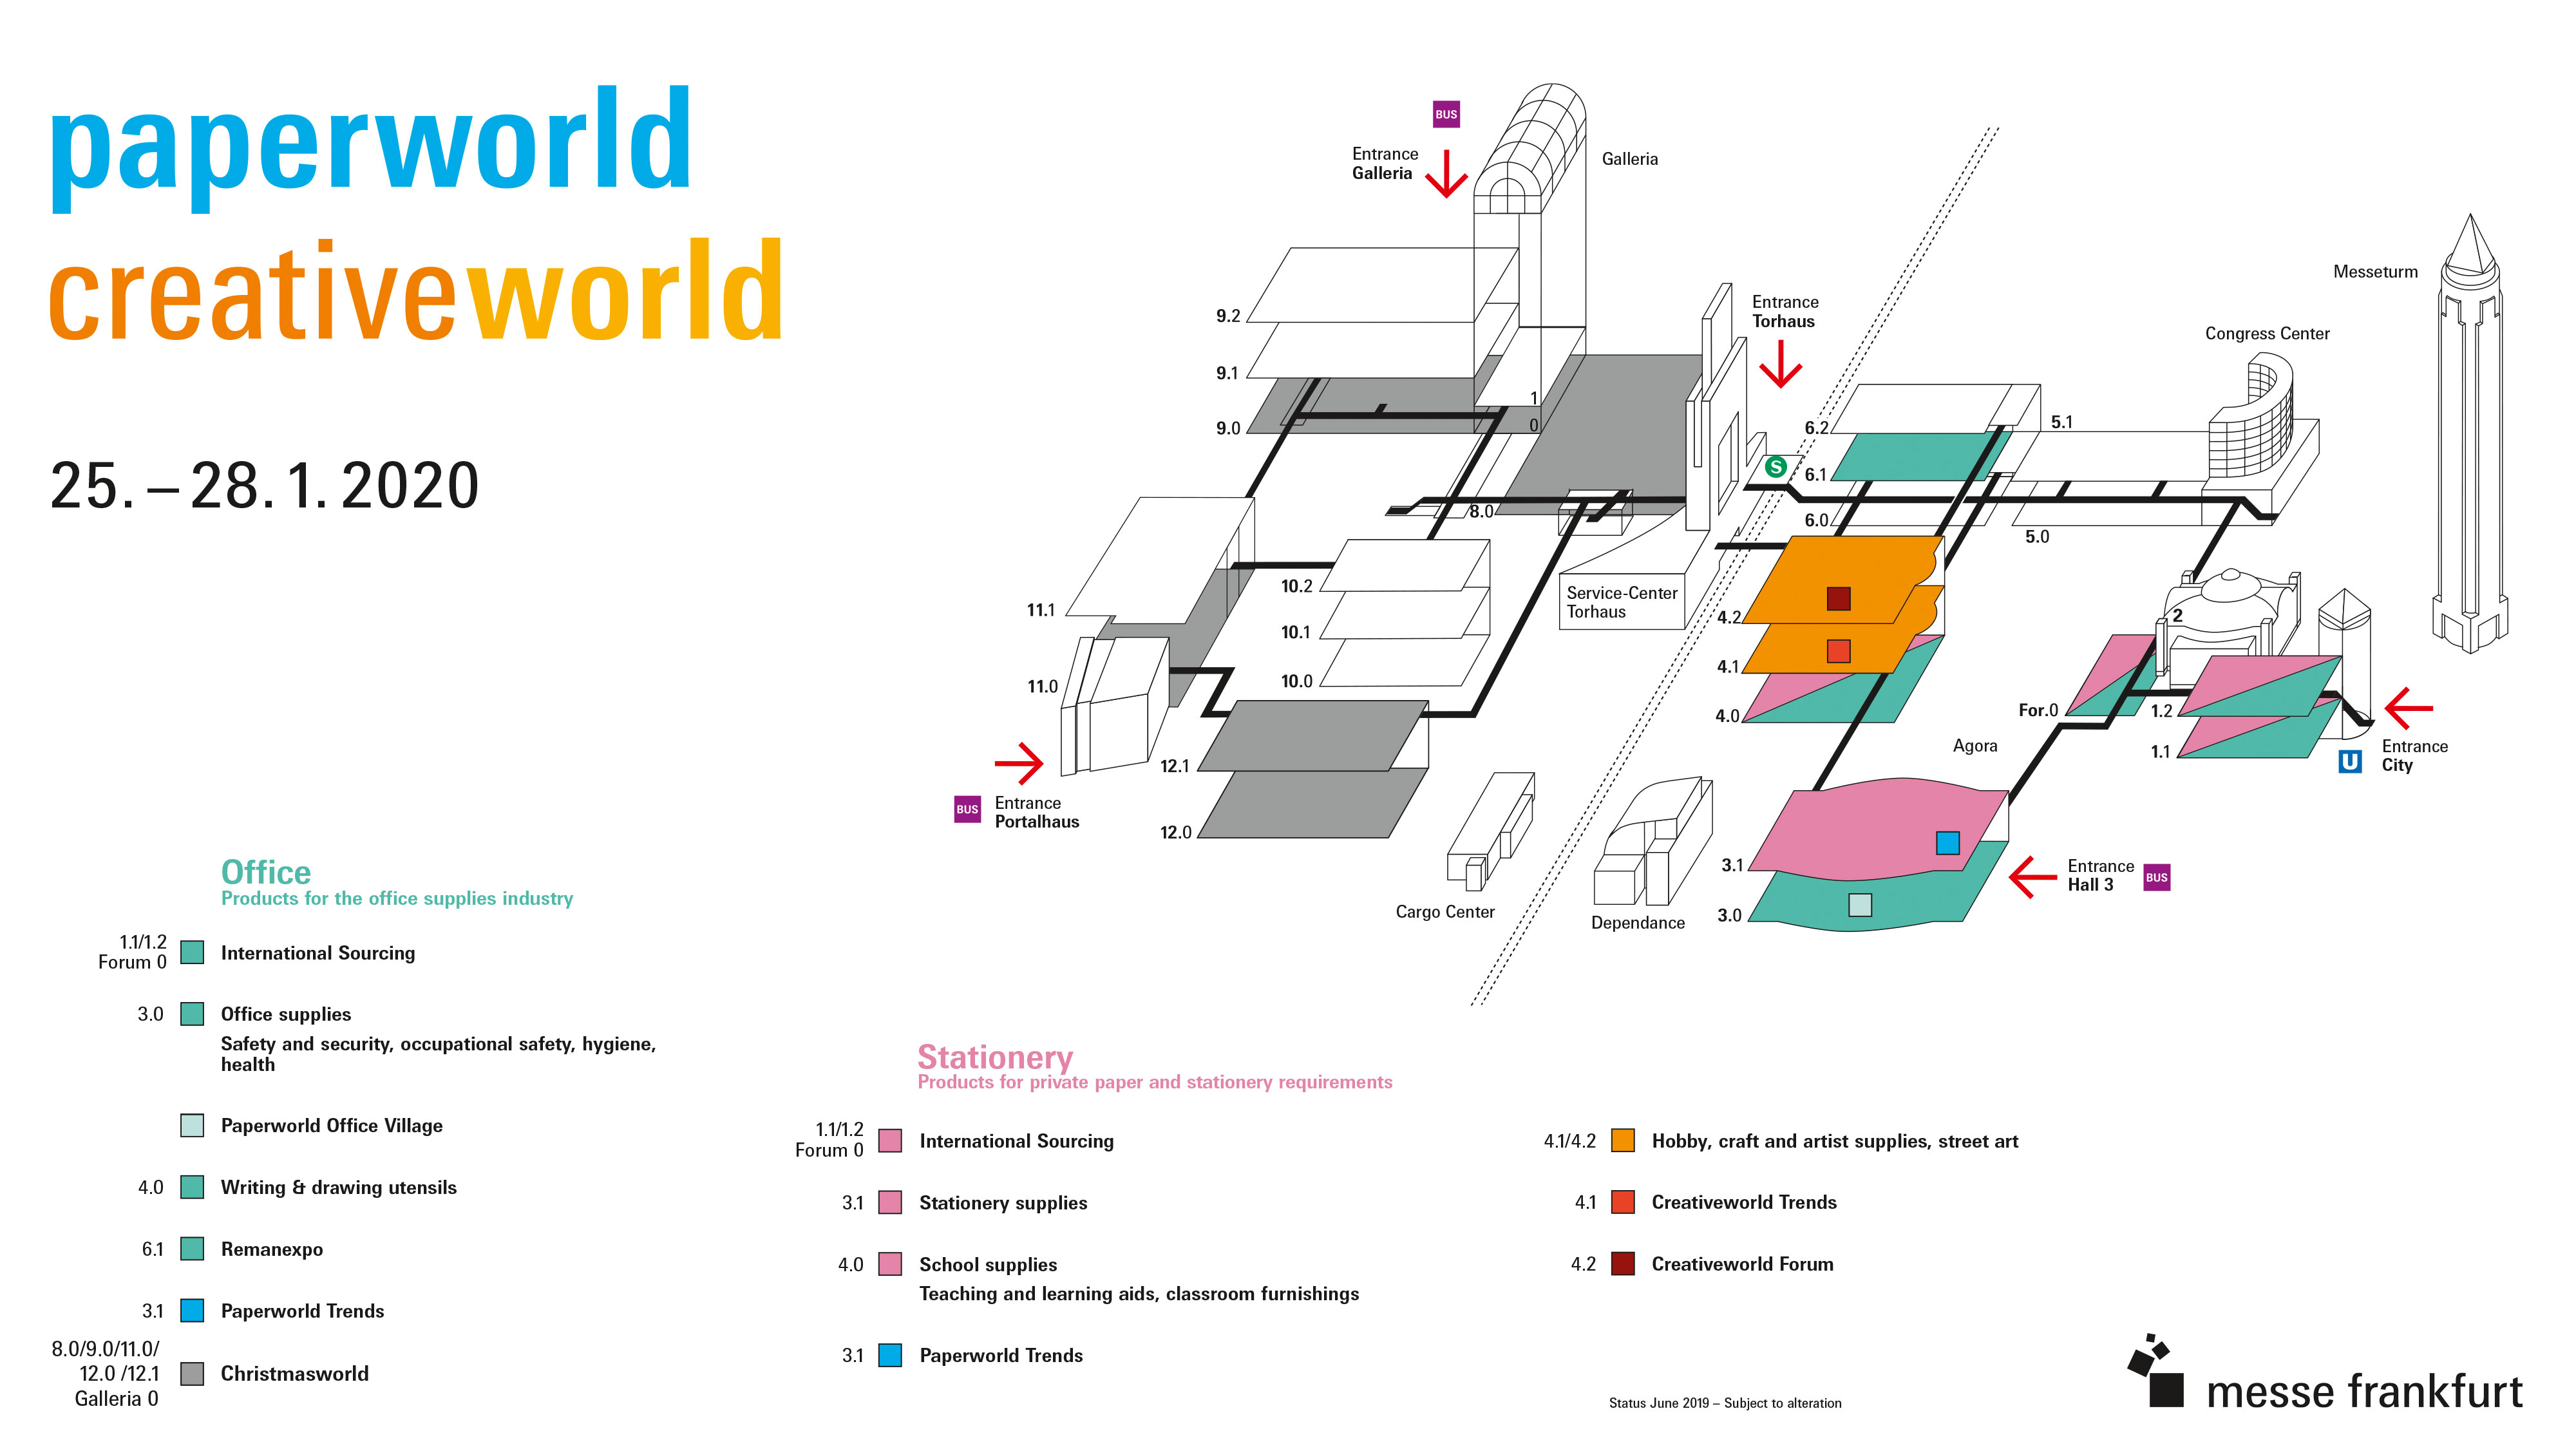 Exhibition hall plan for Creativeworld and Paperworld 2020